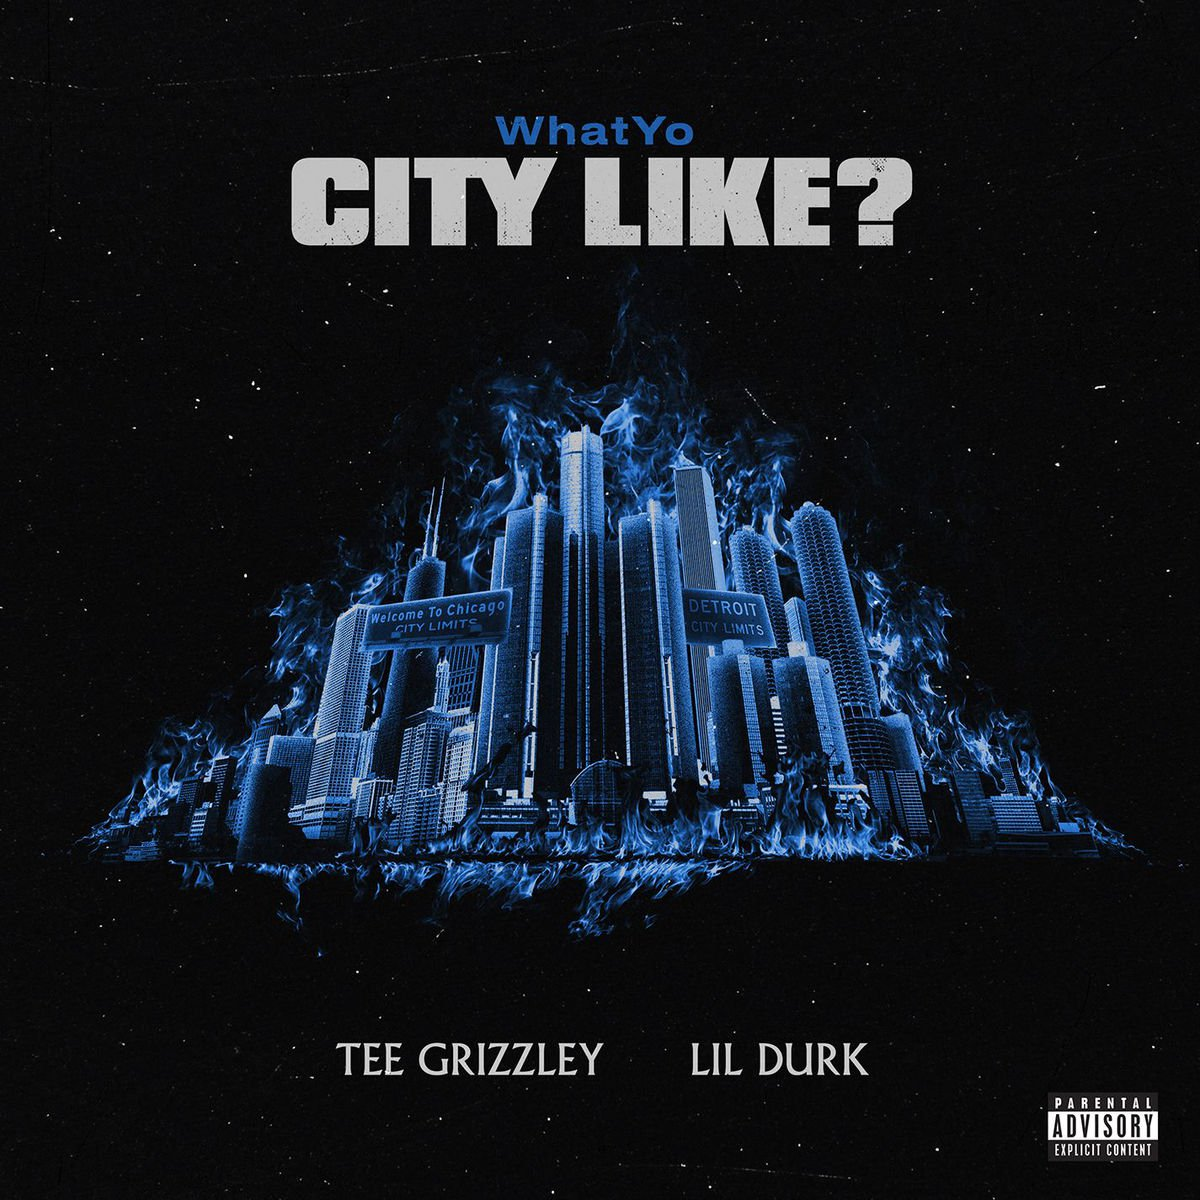 """New Music: Tee Grizzley x Lil Durk – """"What Yo City Like?"""""""